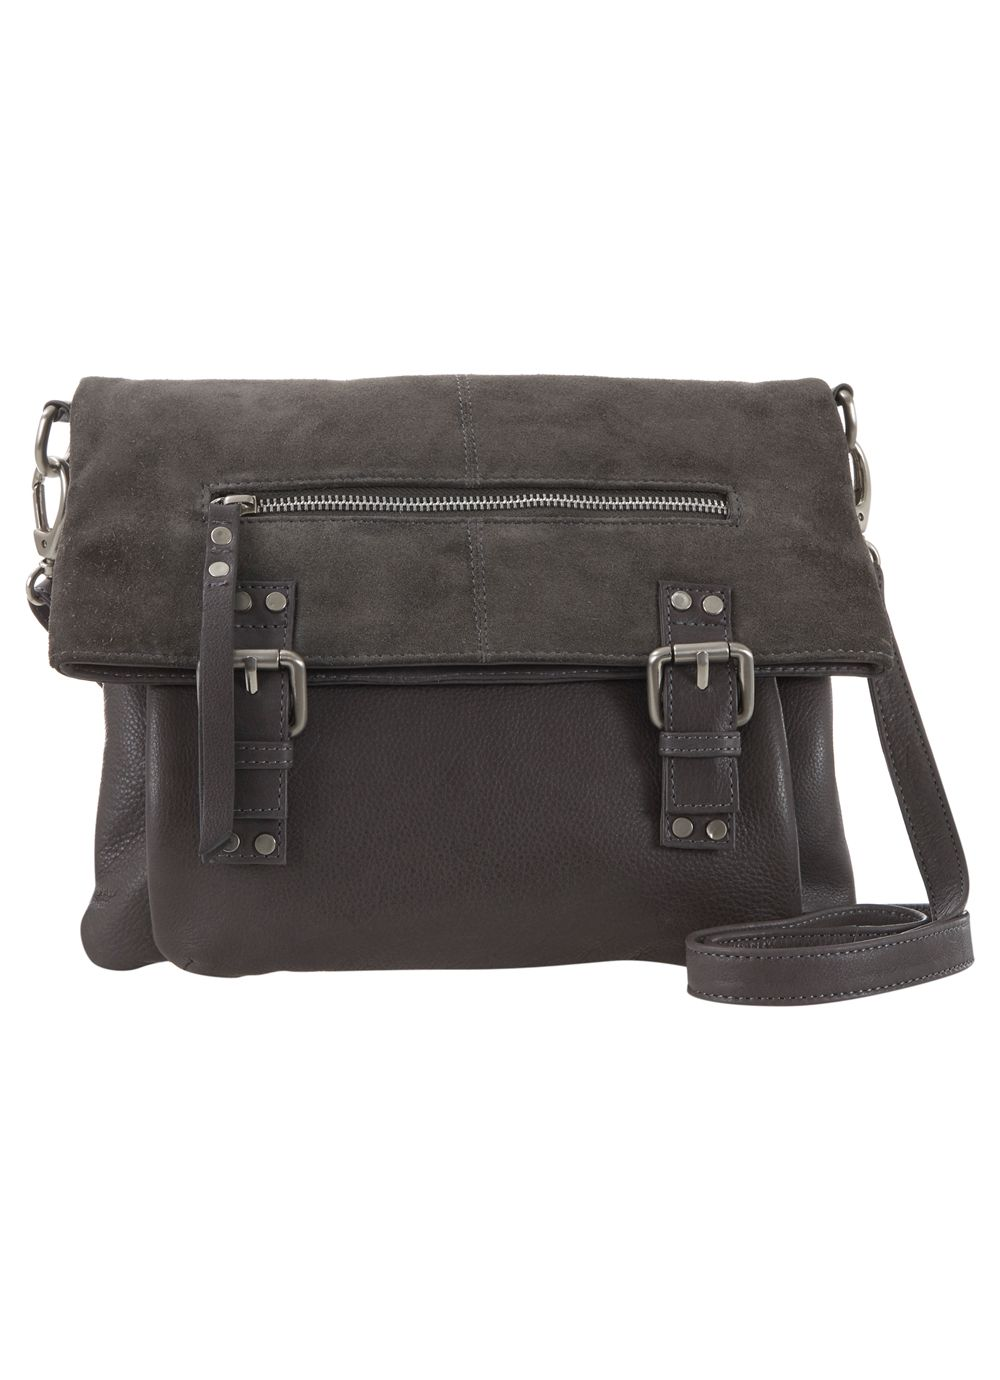 Grey freya satchel